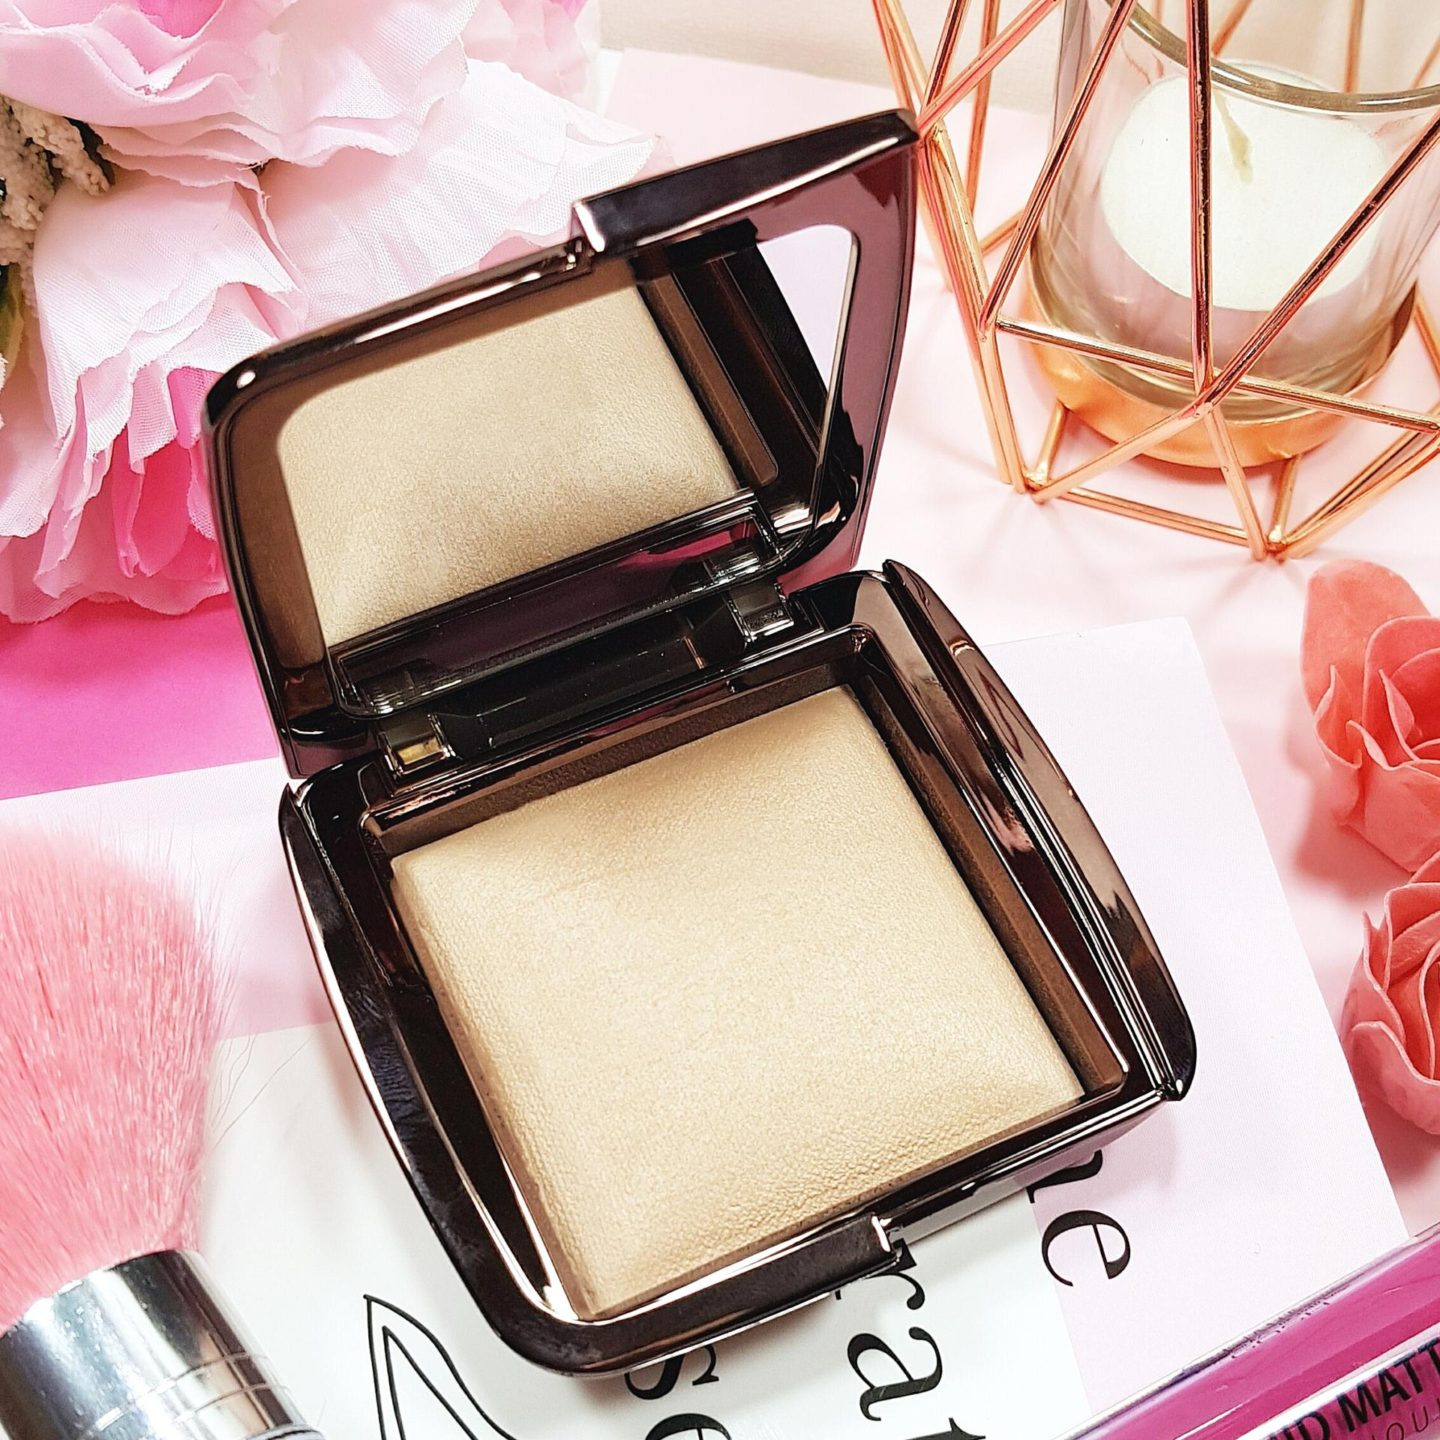 Hourglass Highlighting palette